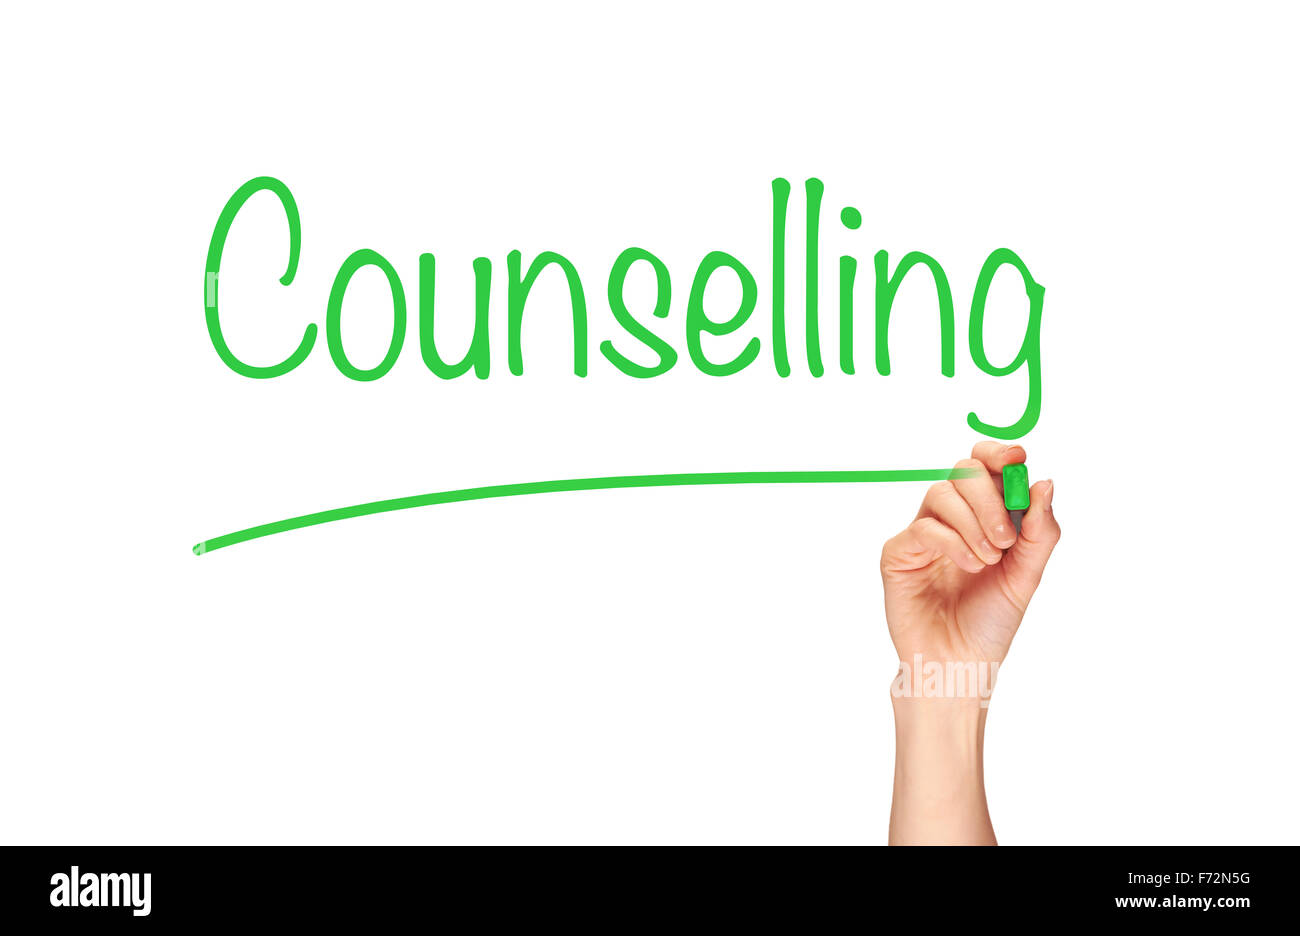 Counselling, written in marker on a clear screen. - Stock Image